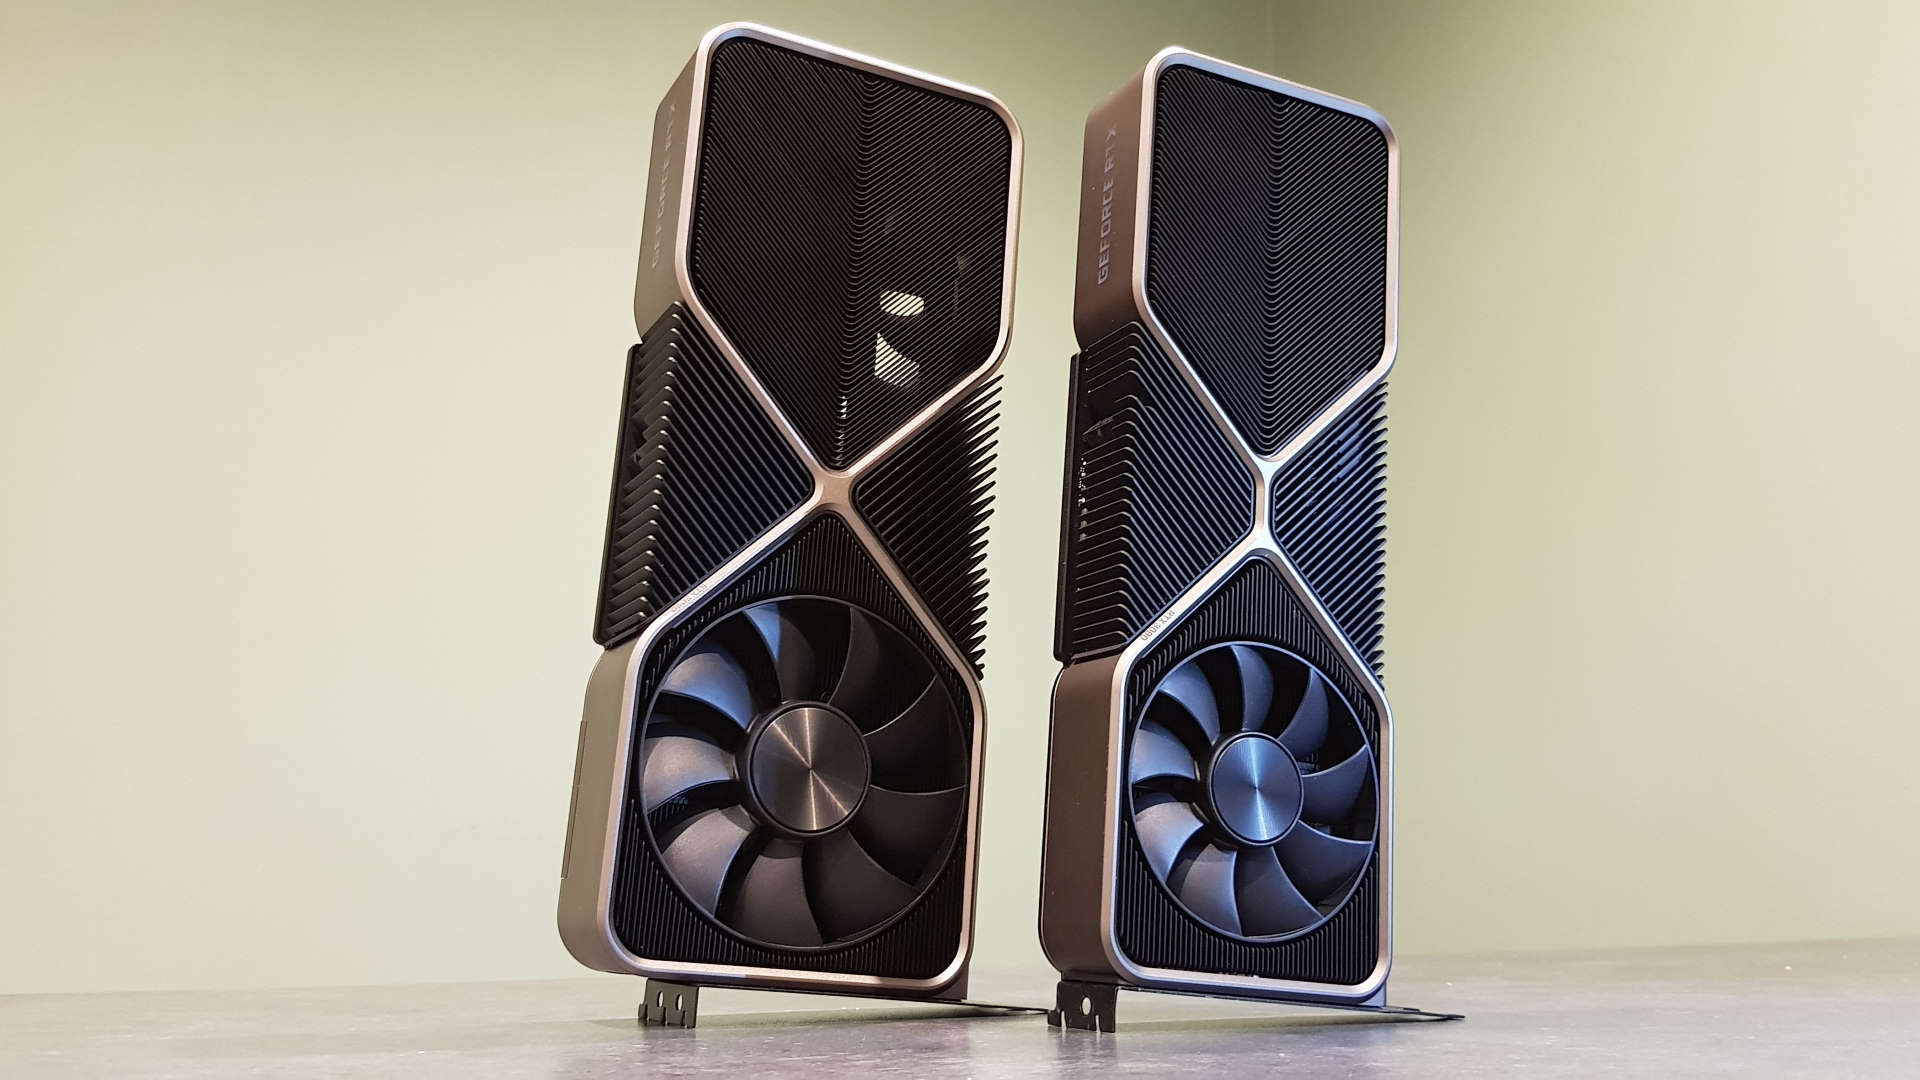 Nvidia RTX 3080 Ti outed in HP's OEM driver, along with a host of desktop and mobile Ampere GPUs